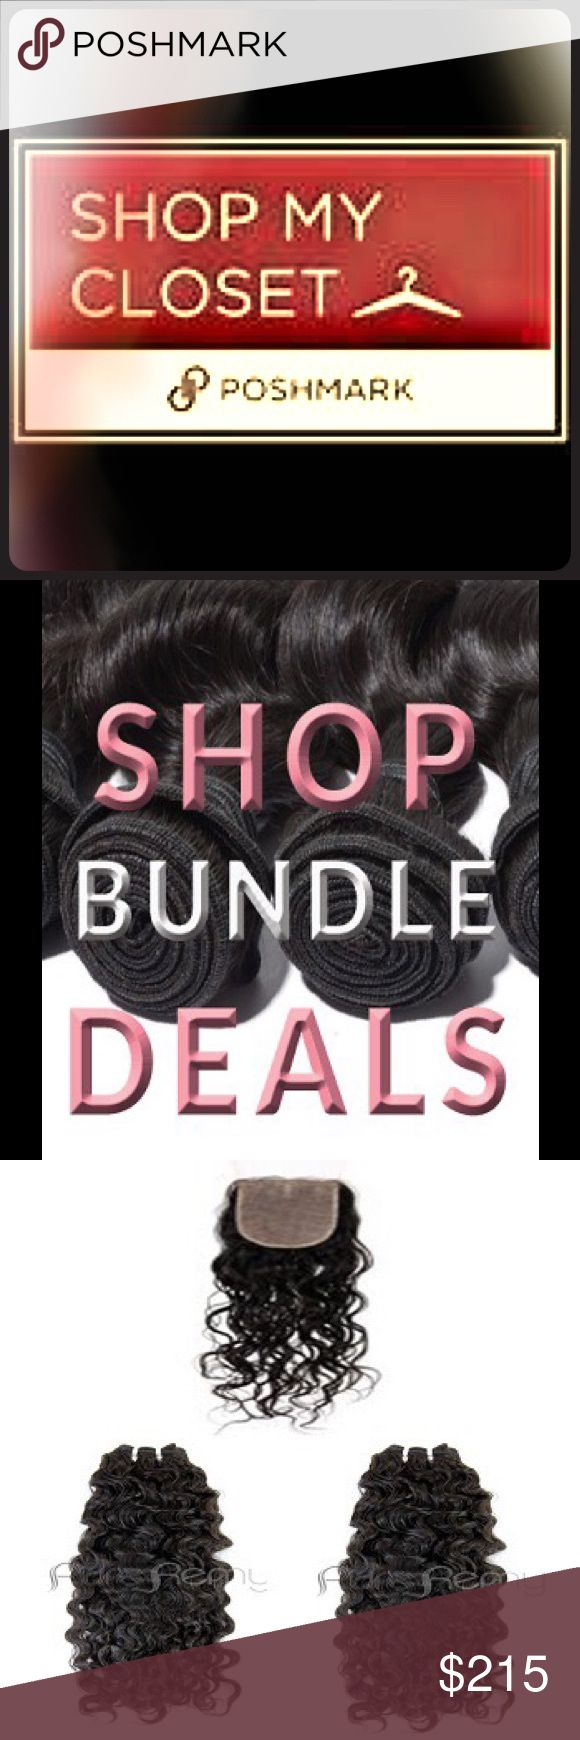 Malaysian bundle deals To get my deals you must place your orders on my online hair weave shop here http://terrisitahairweave.mprsite.com Get all the premium quality hair you need in one simple bundle for one low price.  Our bundle deals give you a variety of the lengths and textures you need to achieve the exact style you want. Whether you are looking for more fullness, Get multiple packs of premium quality 100% Remy hair extensions at one low price.  With our bundles deals, you get the…